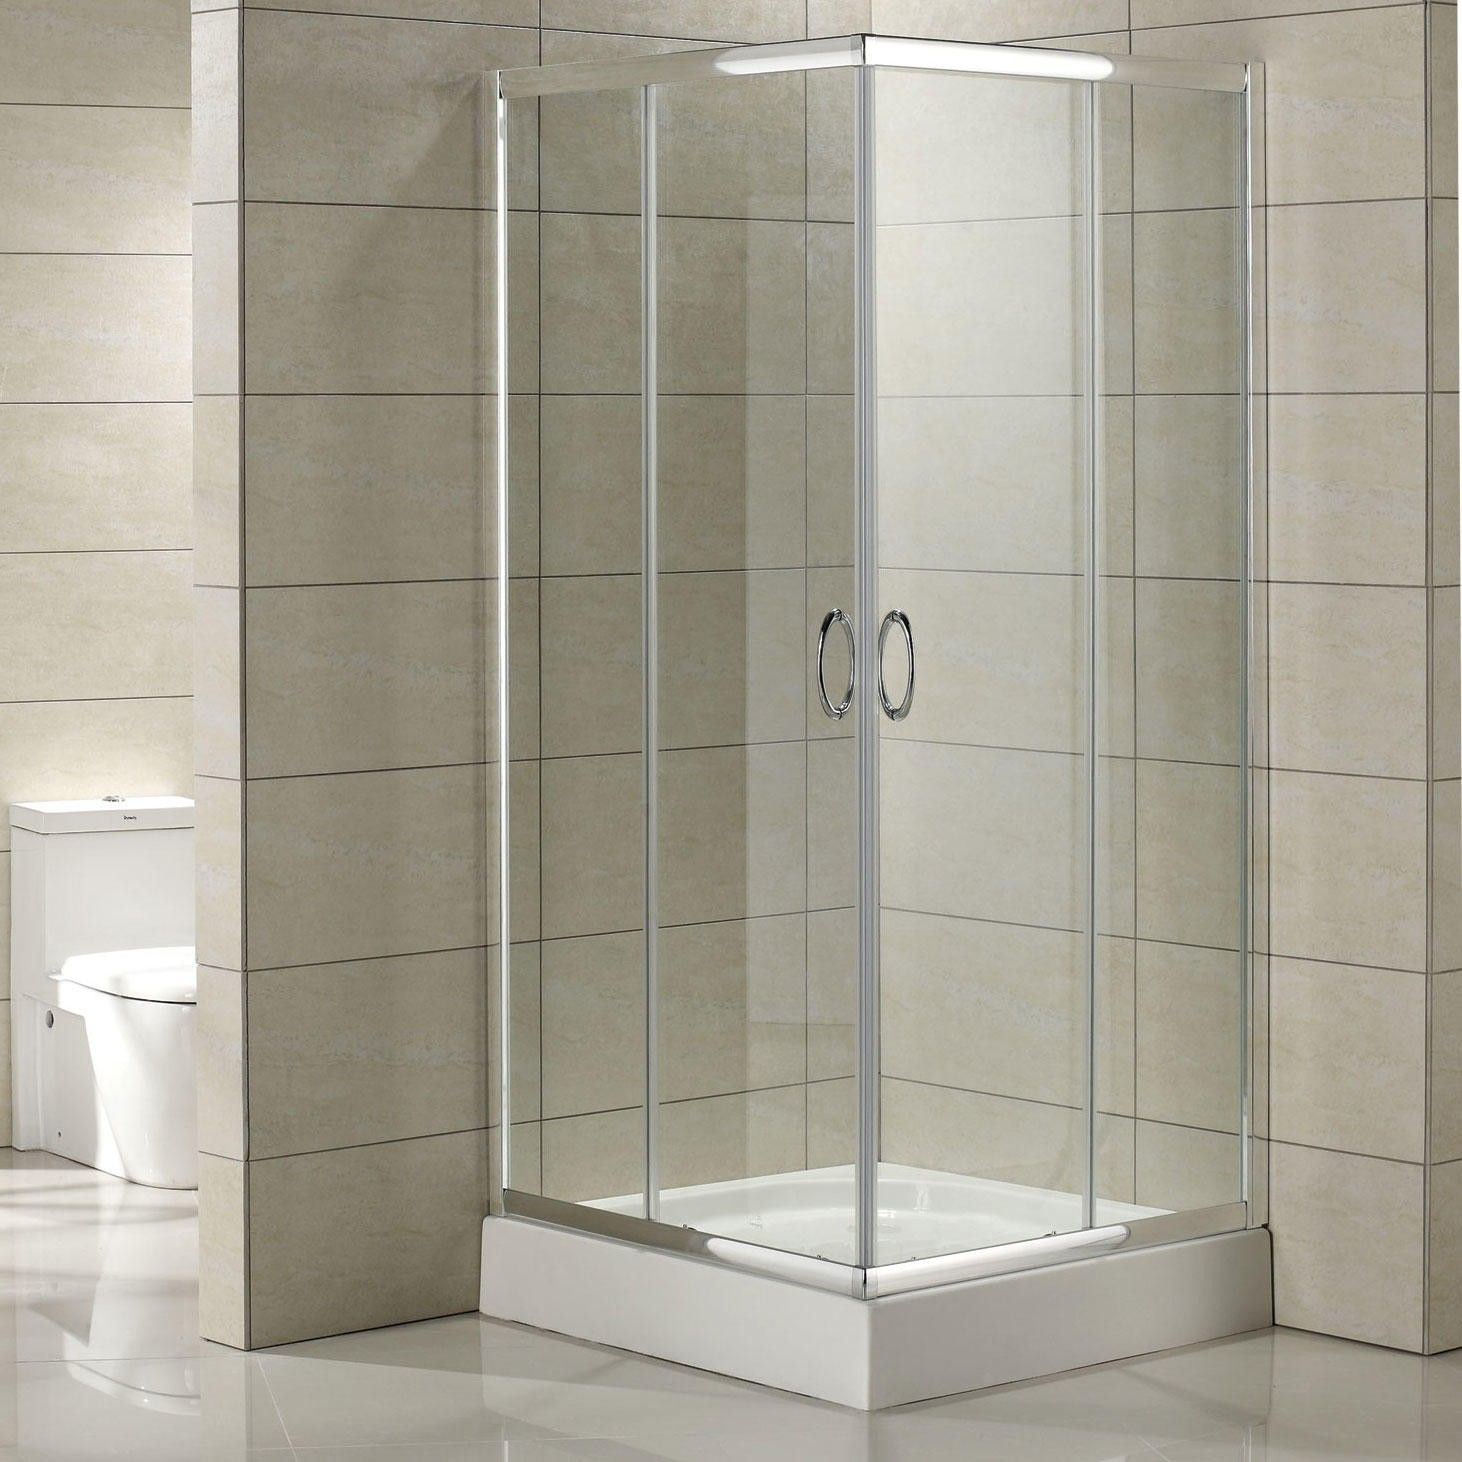 After The 2017 Mini Remodel New Corner Shower Remains On Dreaming Of Later List 34 X Torres Double Door Enclosure